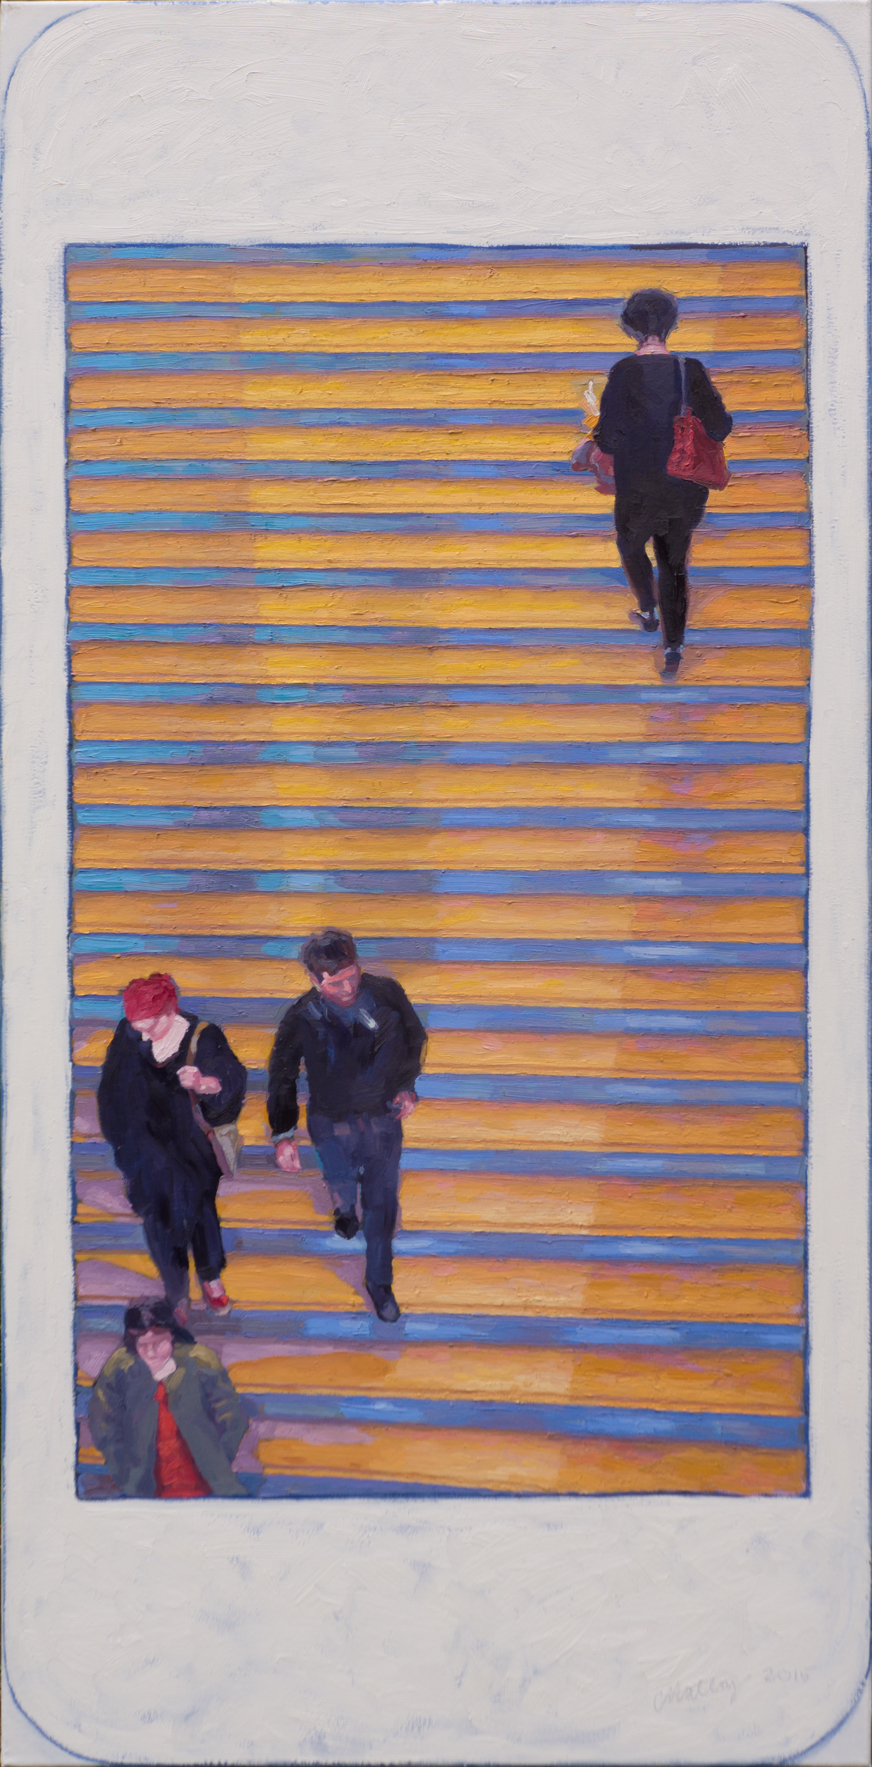 "Hashtag METmuseum grand staircase 2. Oil on canvas 24"" x 48"" 2015"